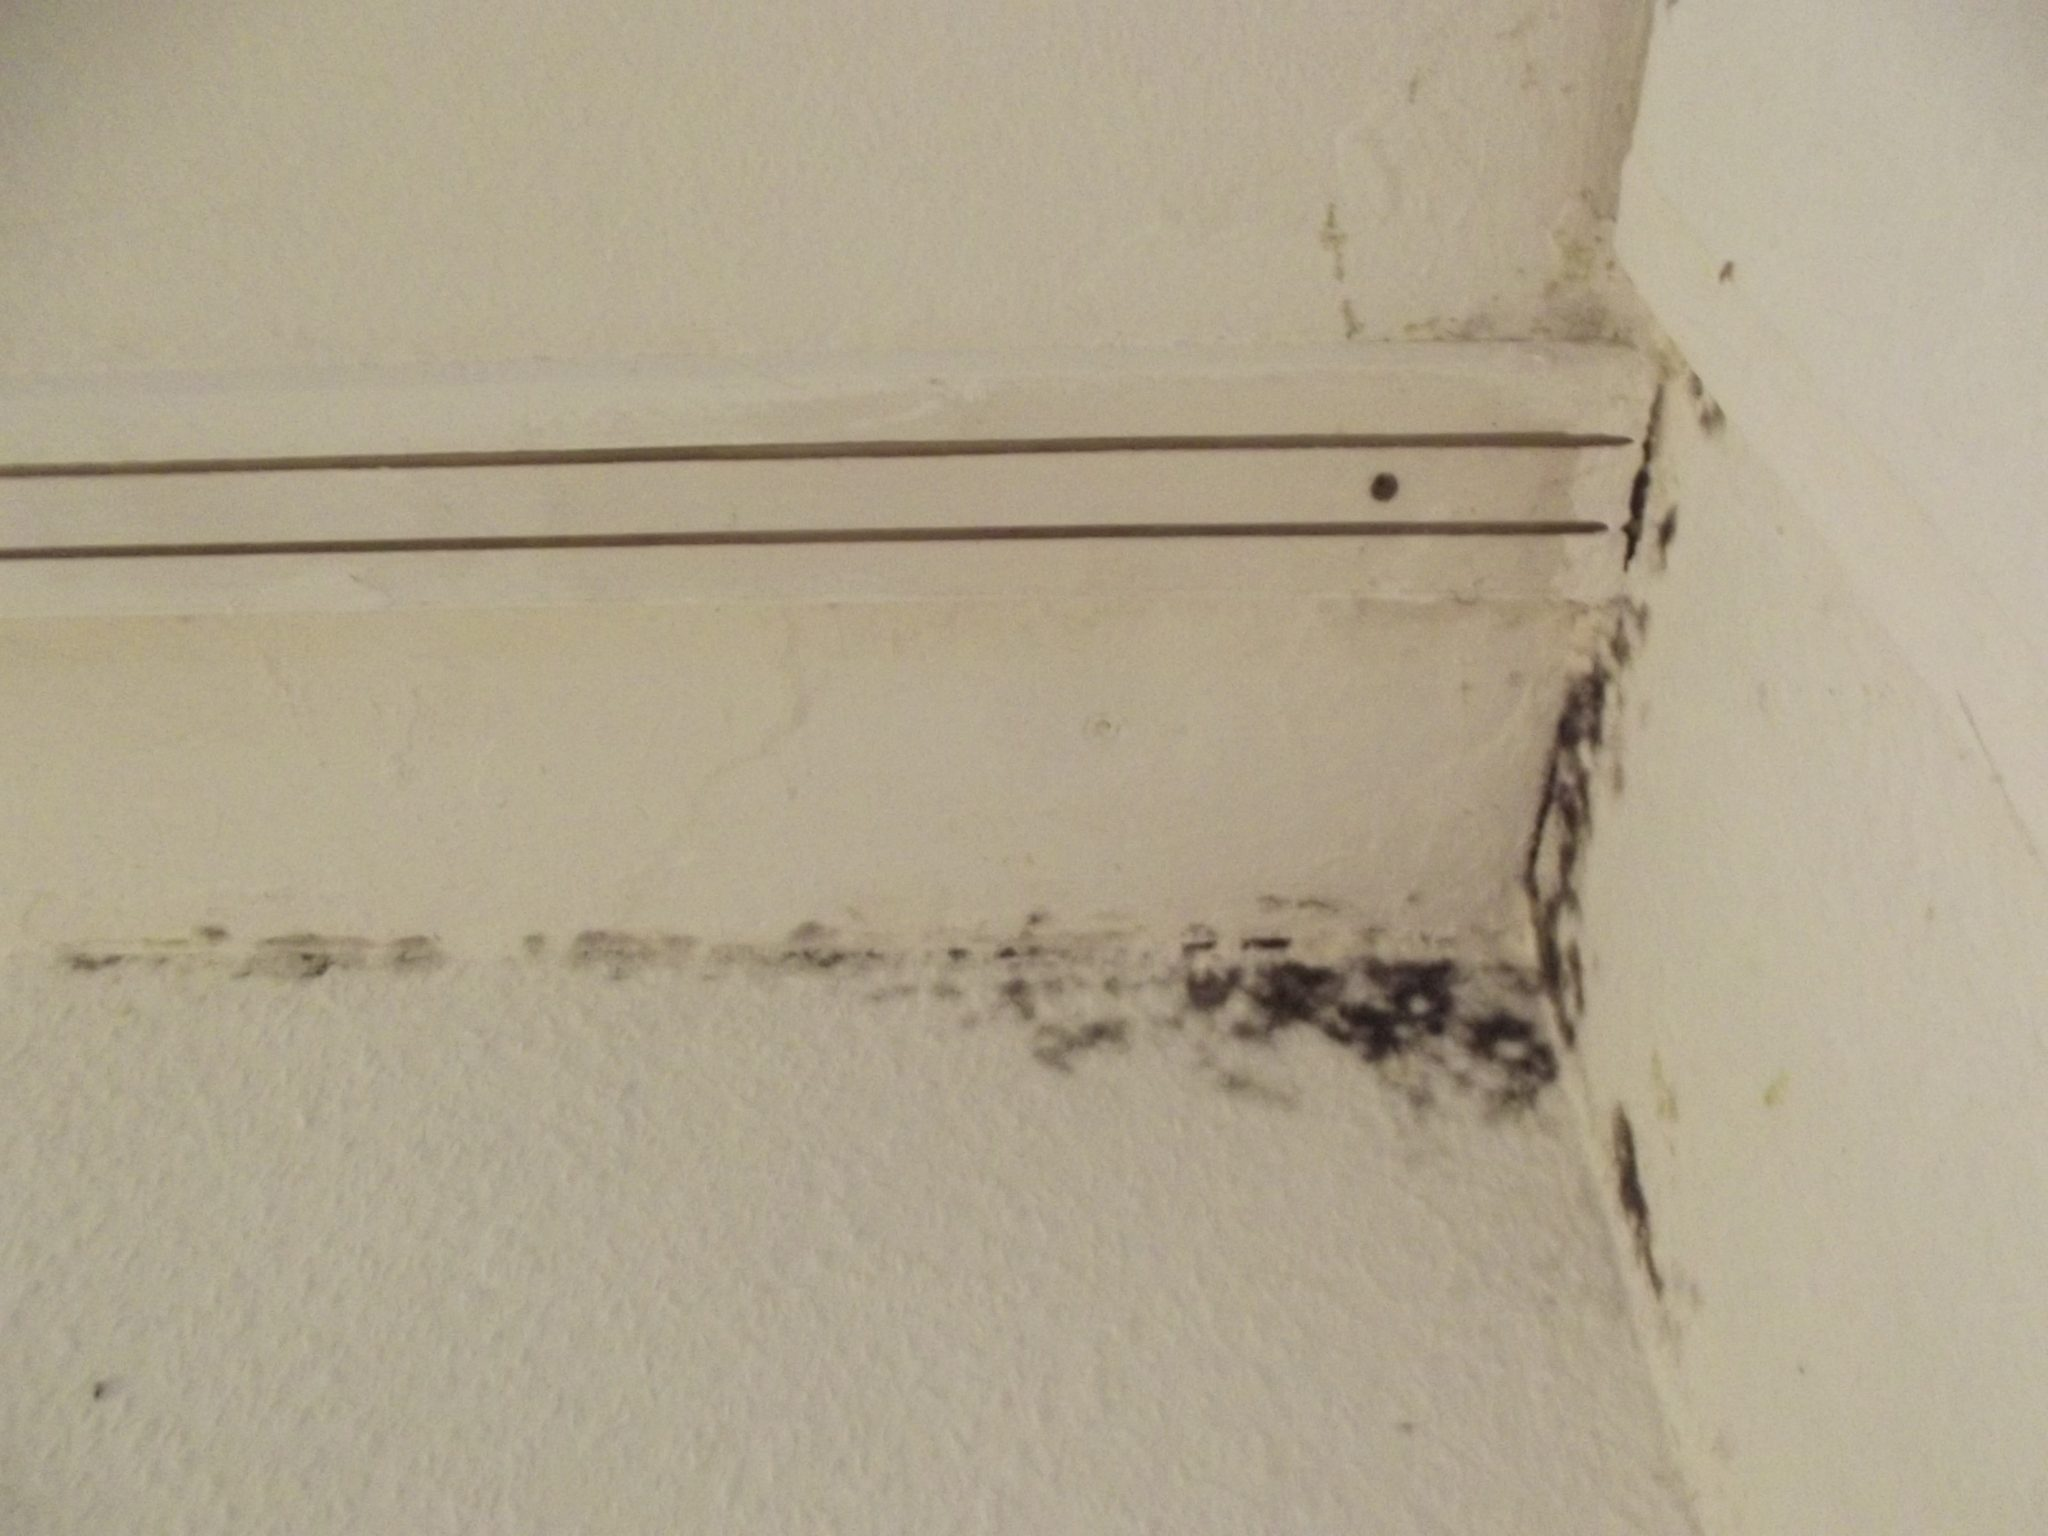 spot treat black mold in your home basement waterproofing